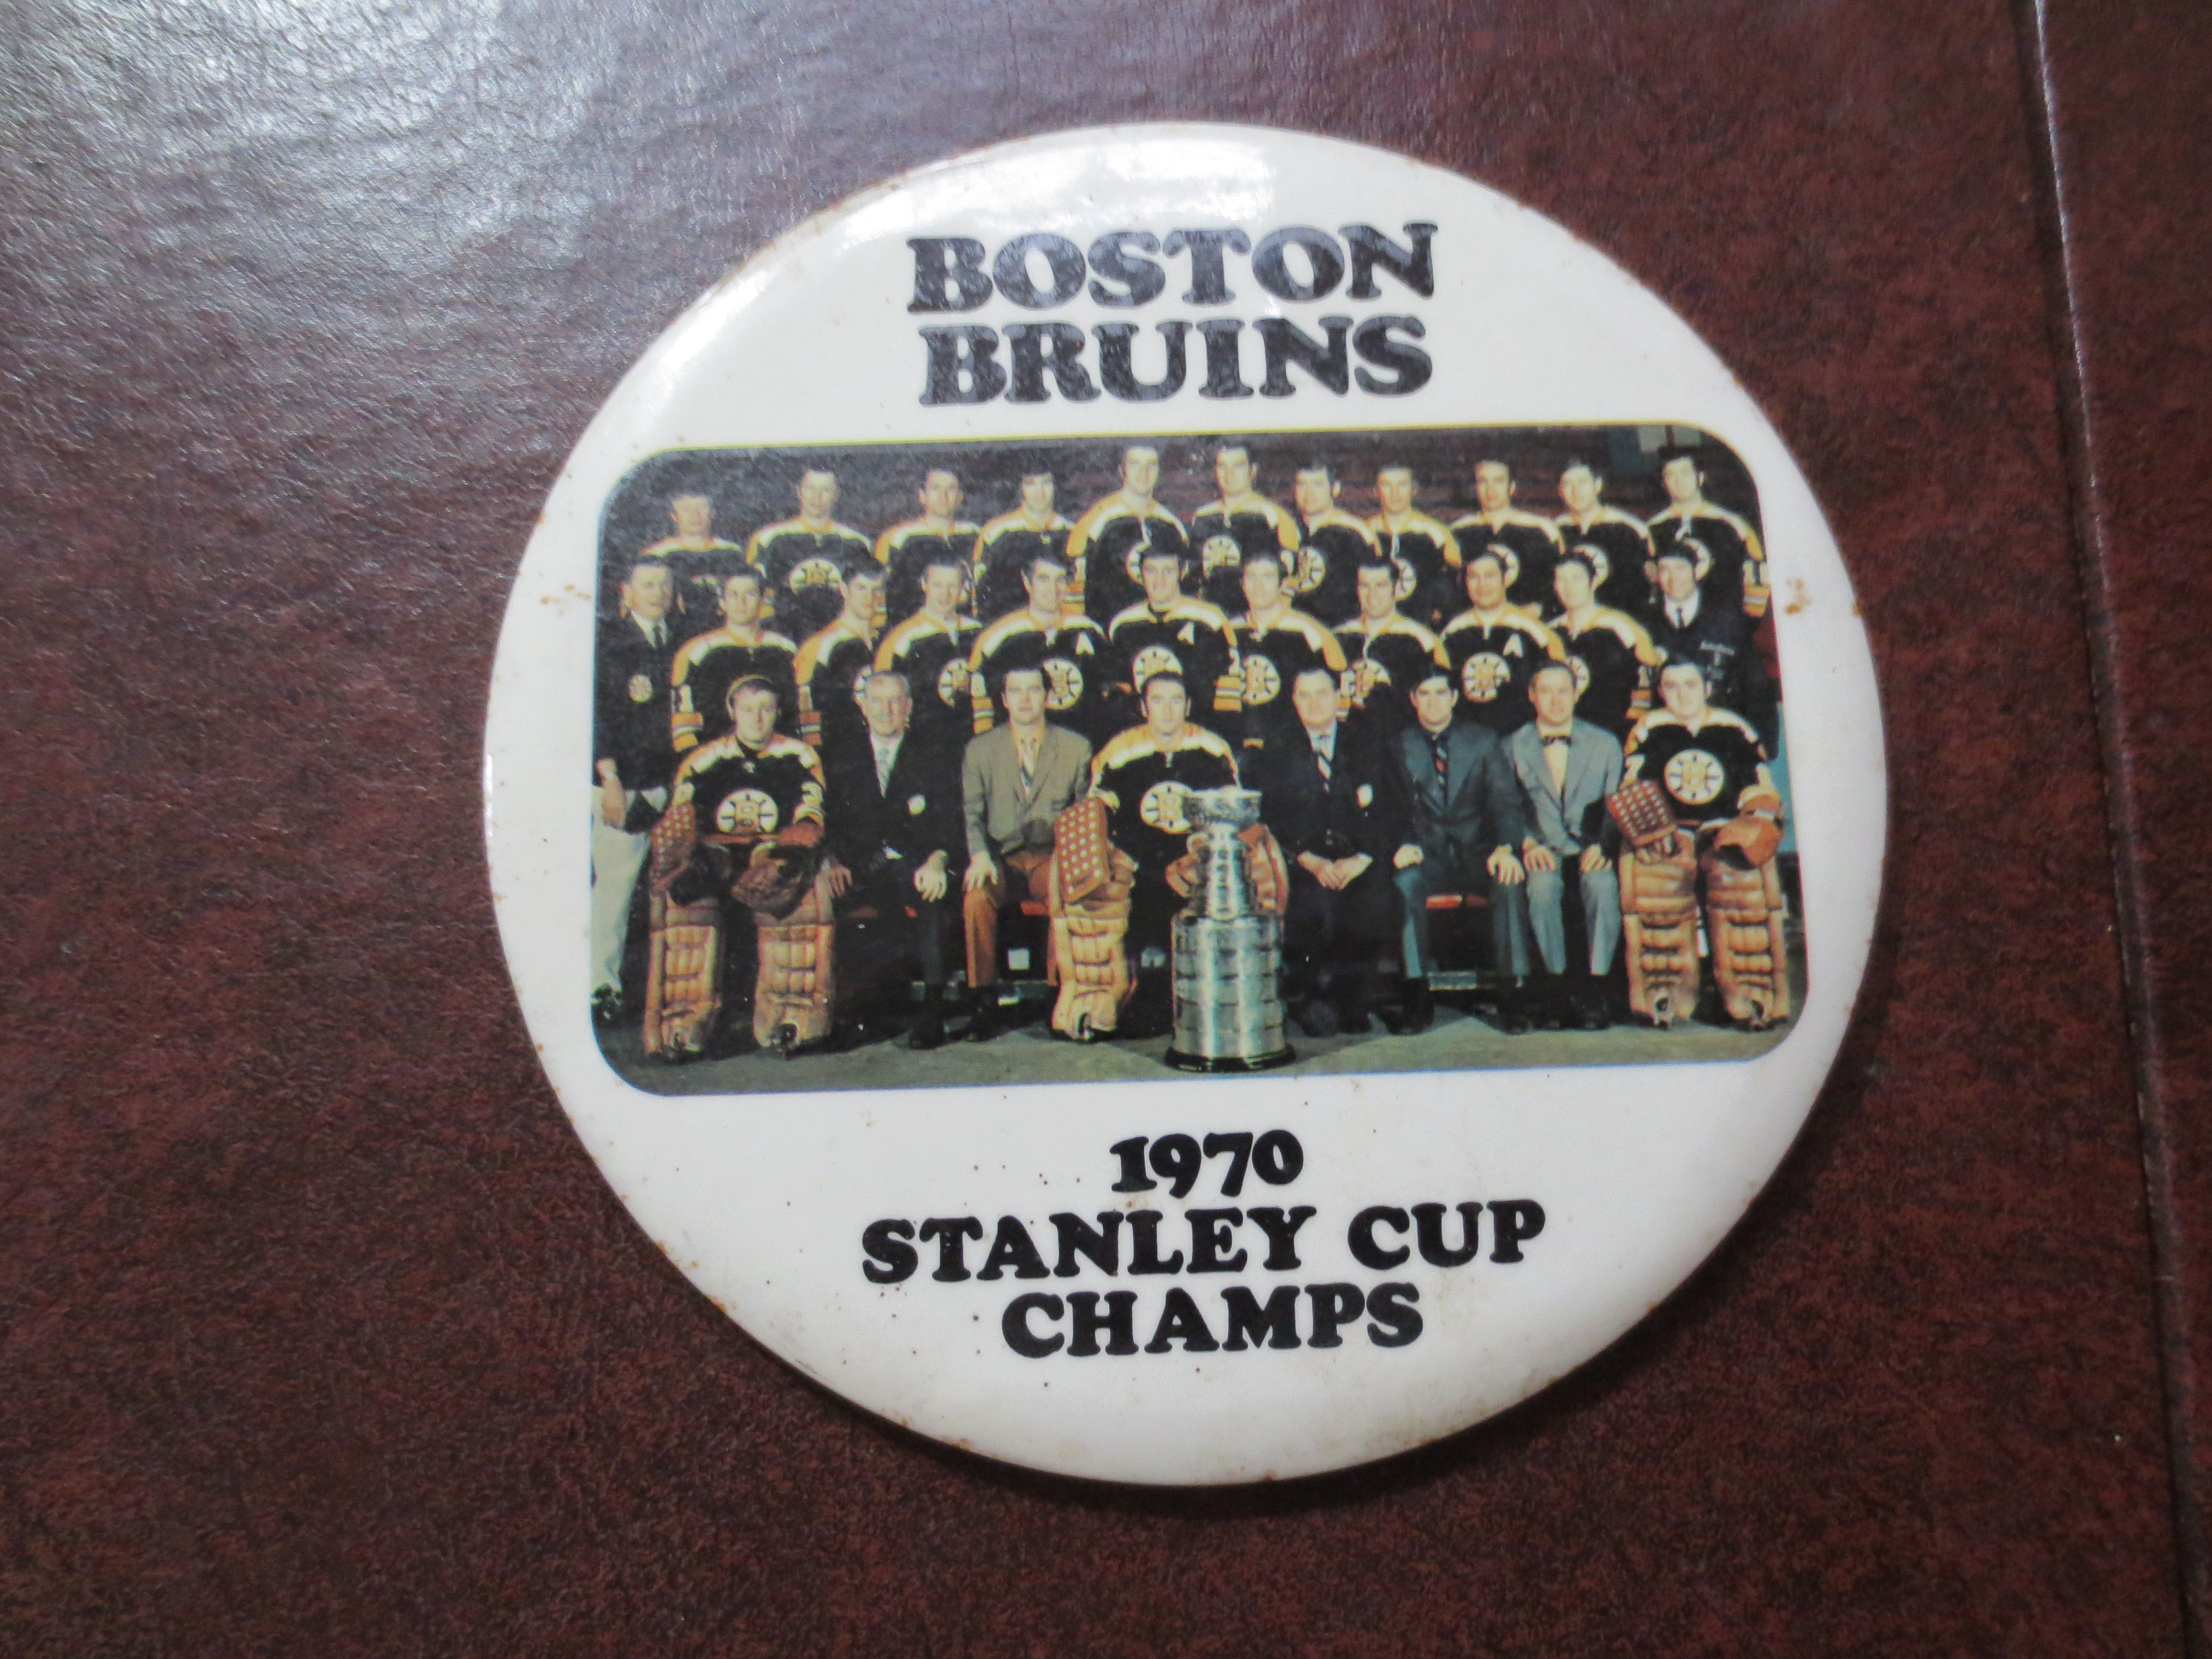 Boston Bruins Stanley Cup 1970 Lot Detail - 1970 Bost...